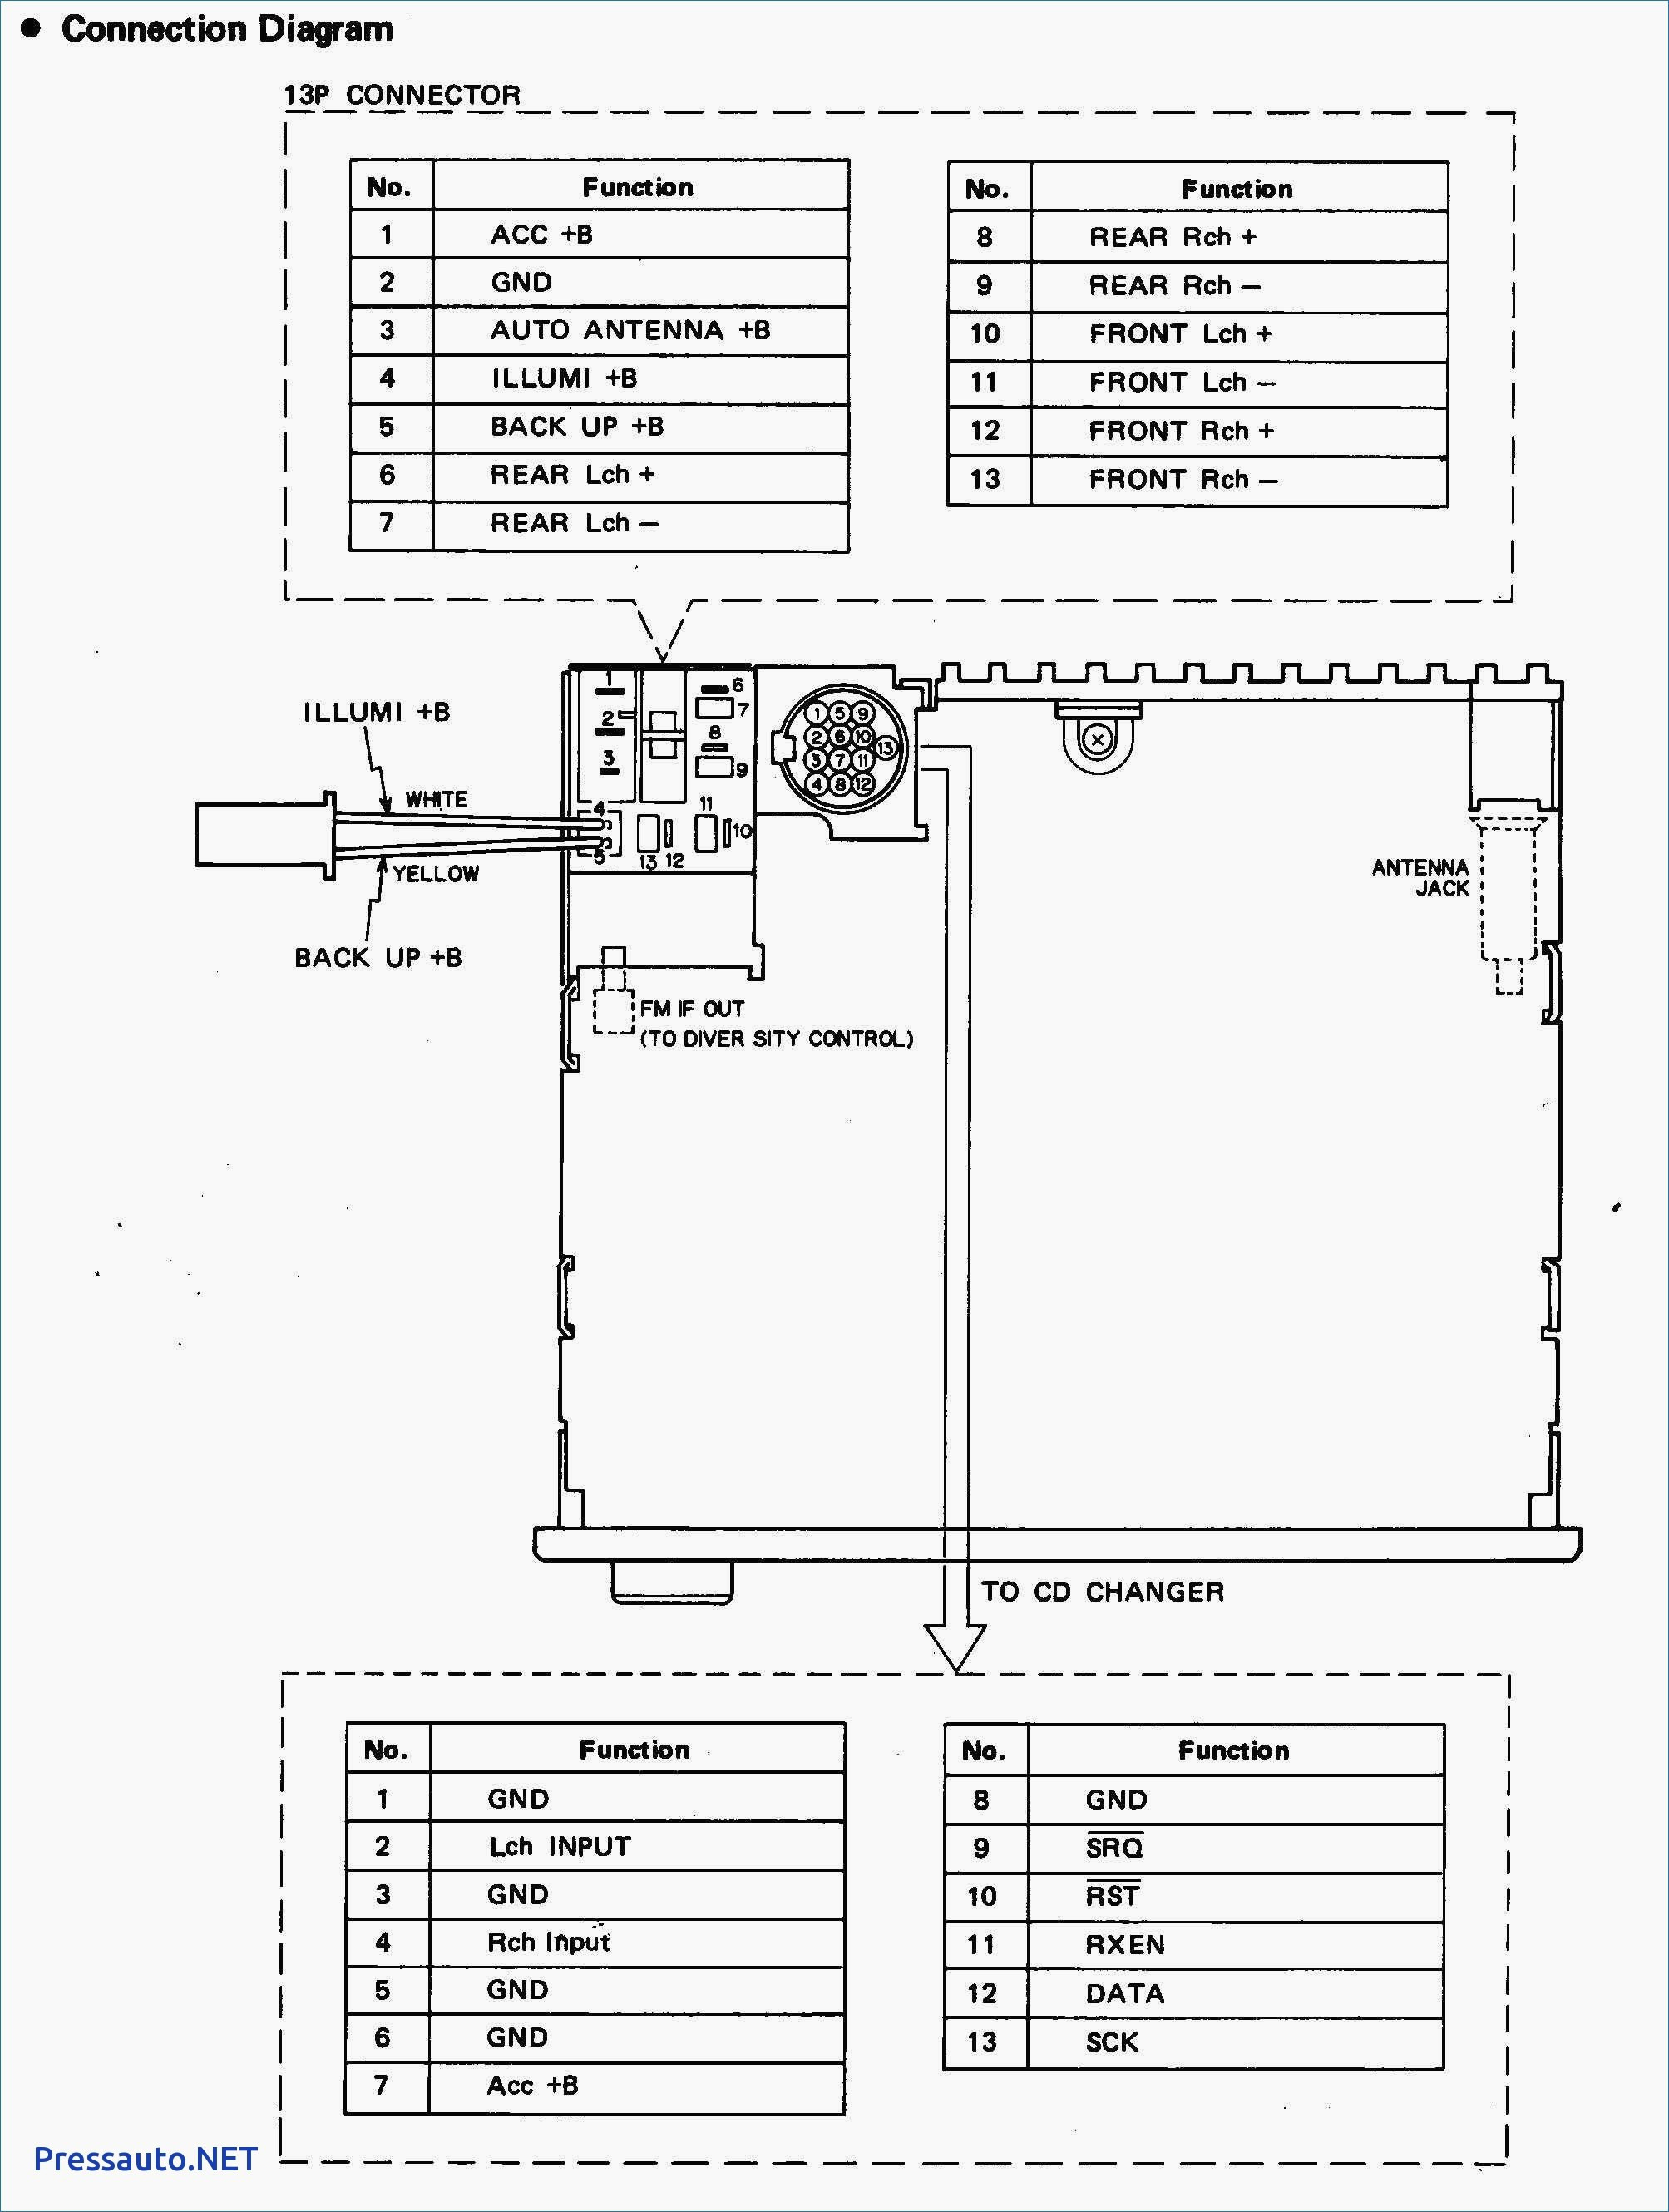 clarion car stereo wiring diagram wiring diagram ebookclarion car stereo wiring wiring data diagramclarion car stereo wiring diagram gallery wiring diagram sample clarion